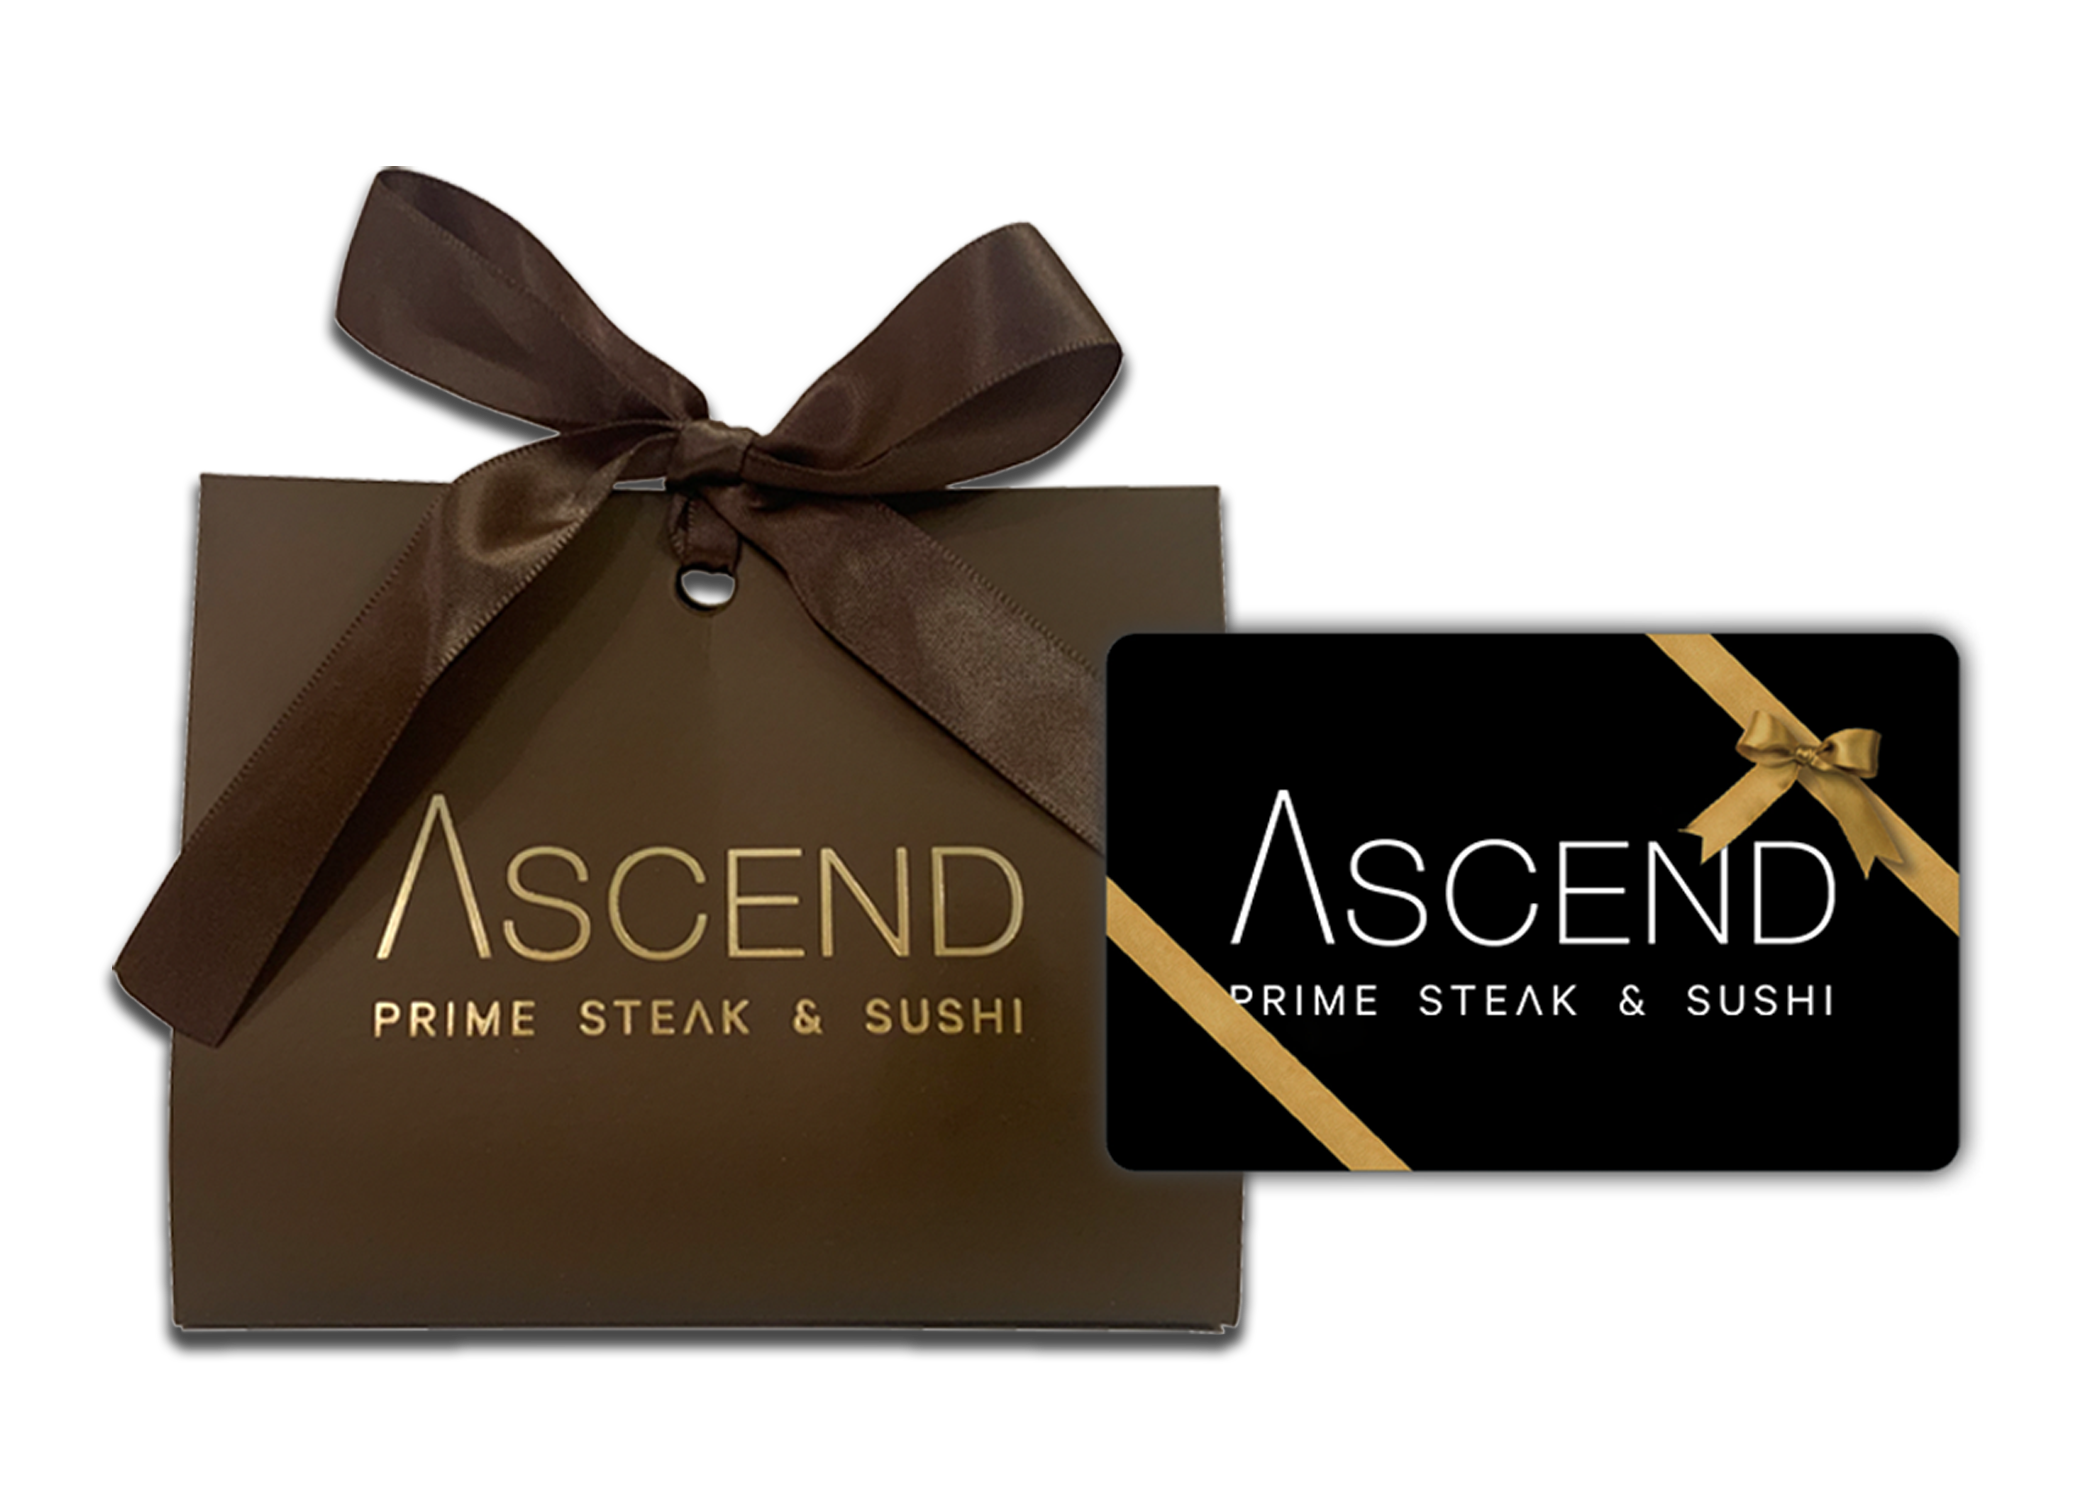 Ascend Prime Gift Card and Holder